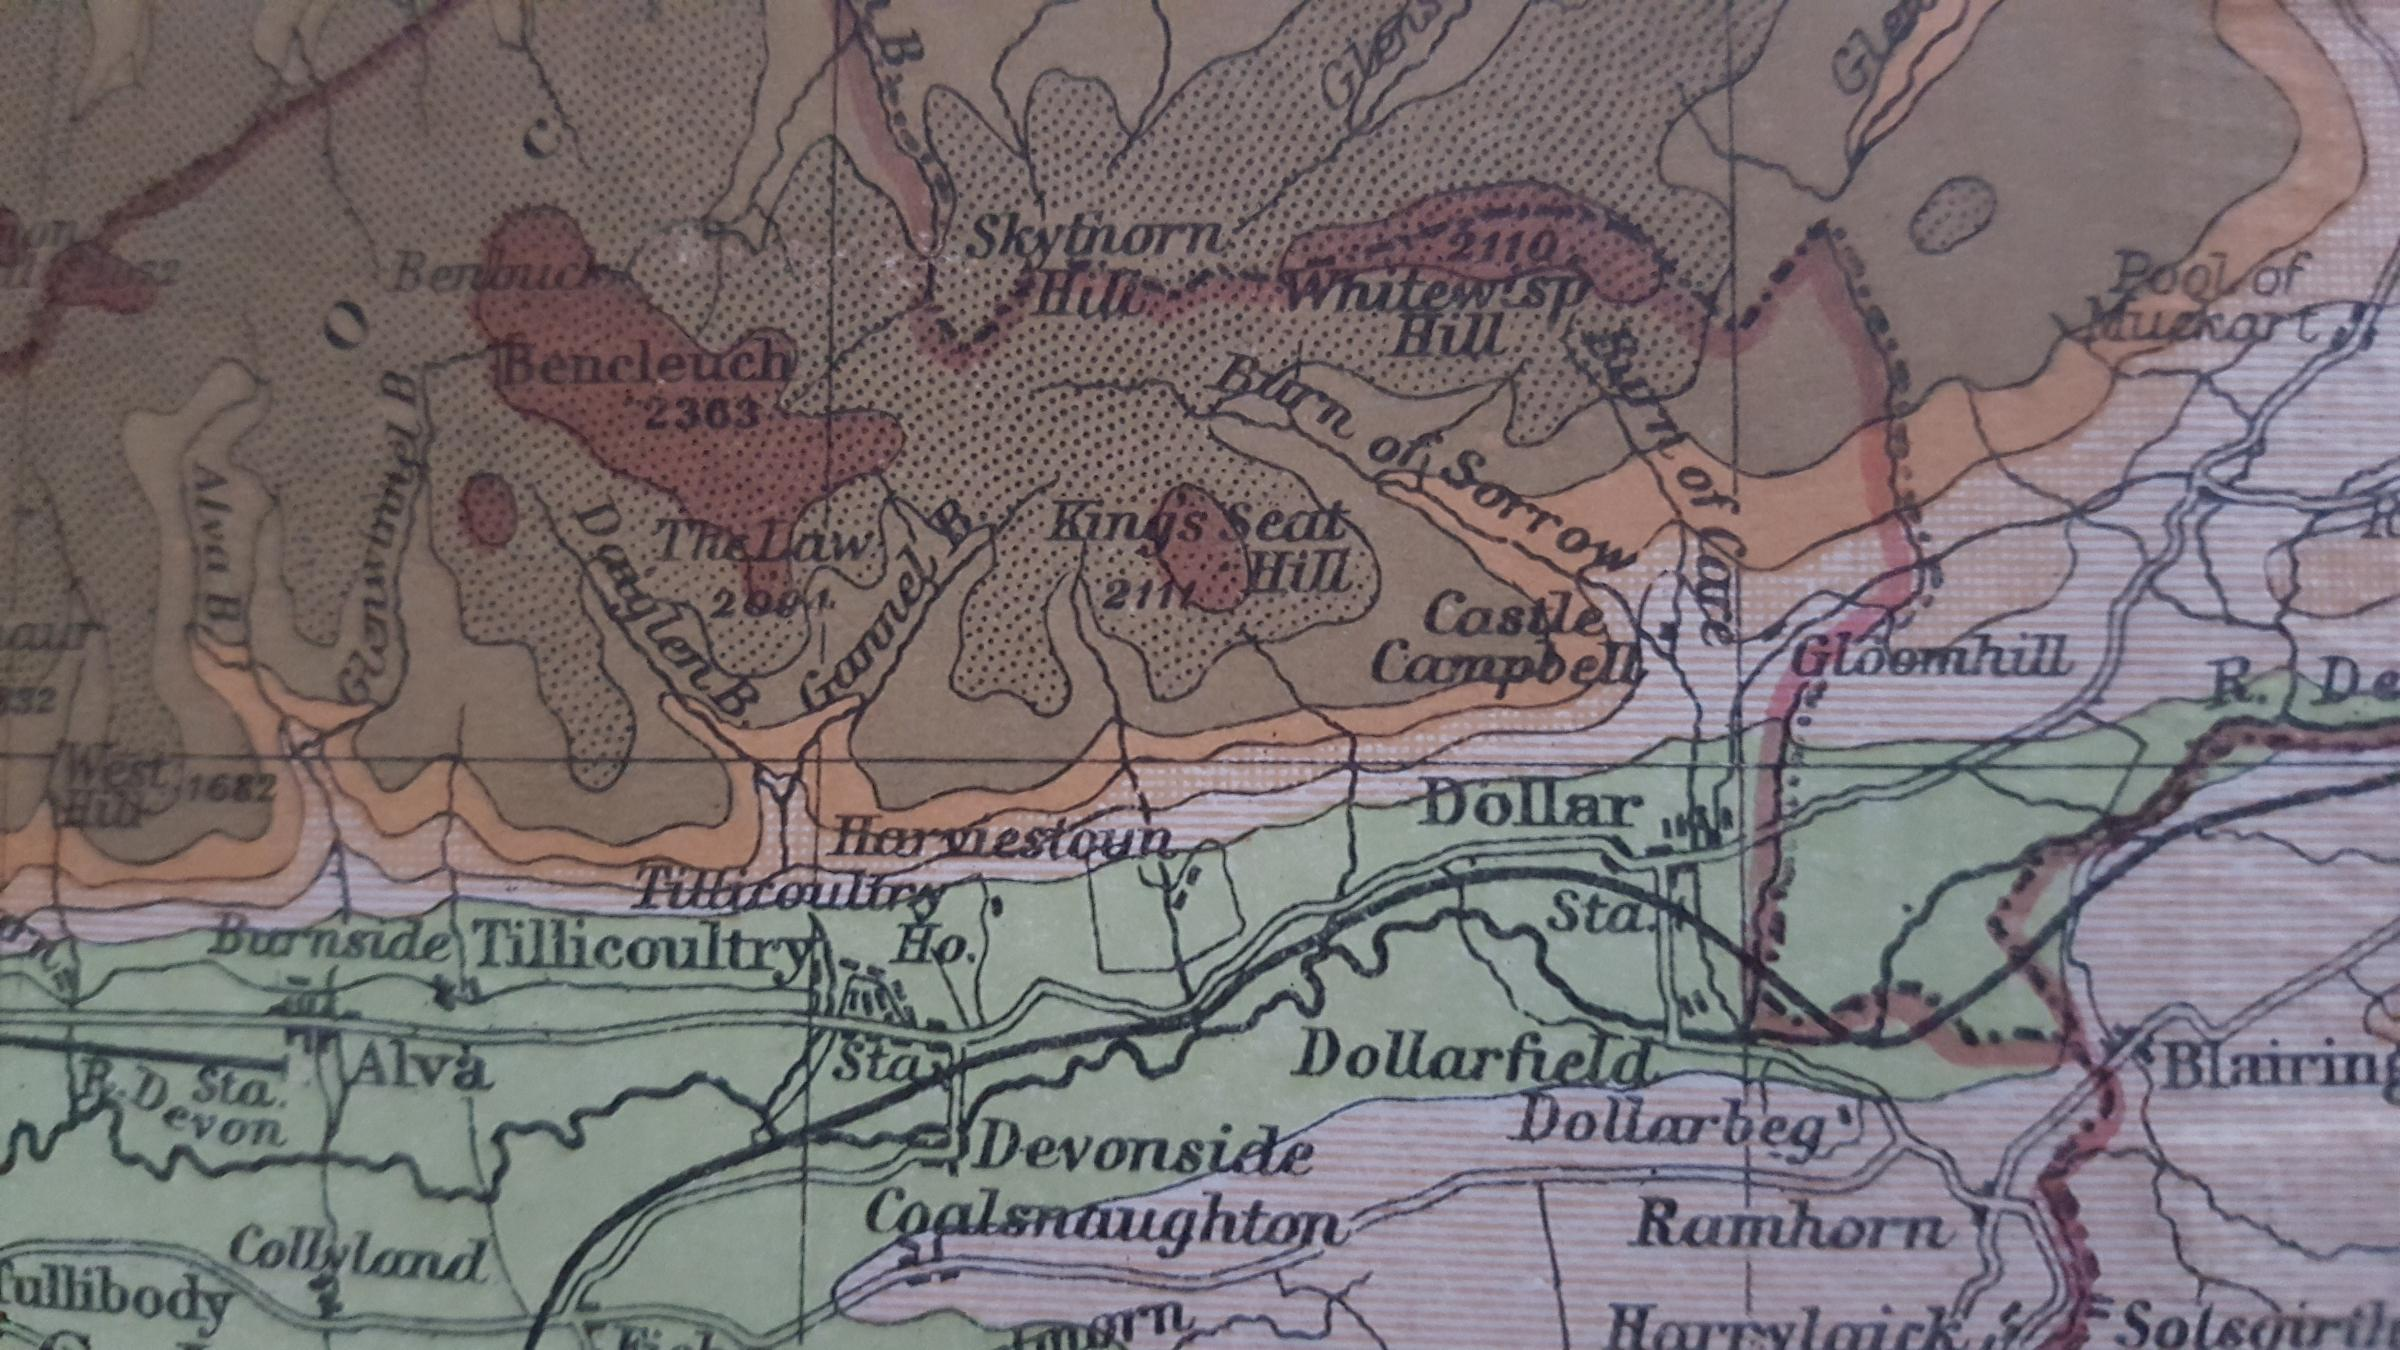 A map showing the location of King's Seat in the Ochils